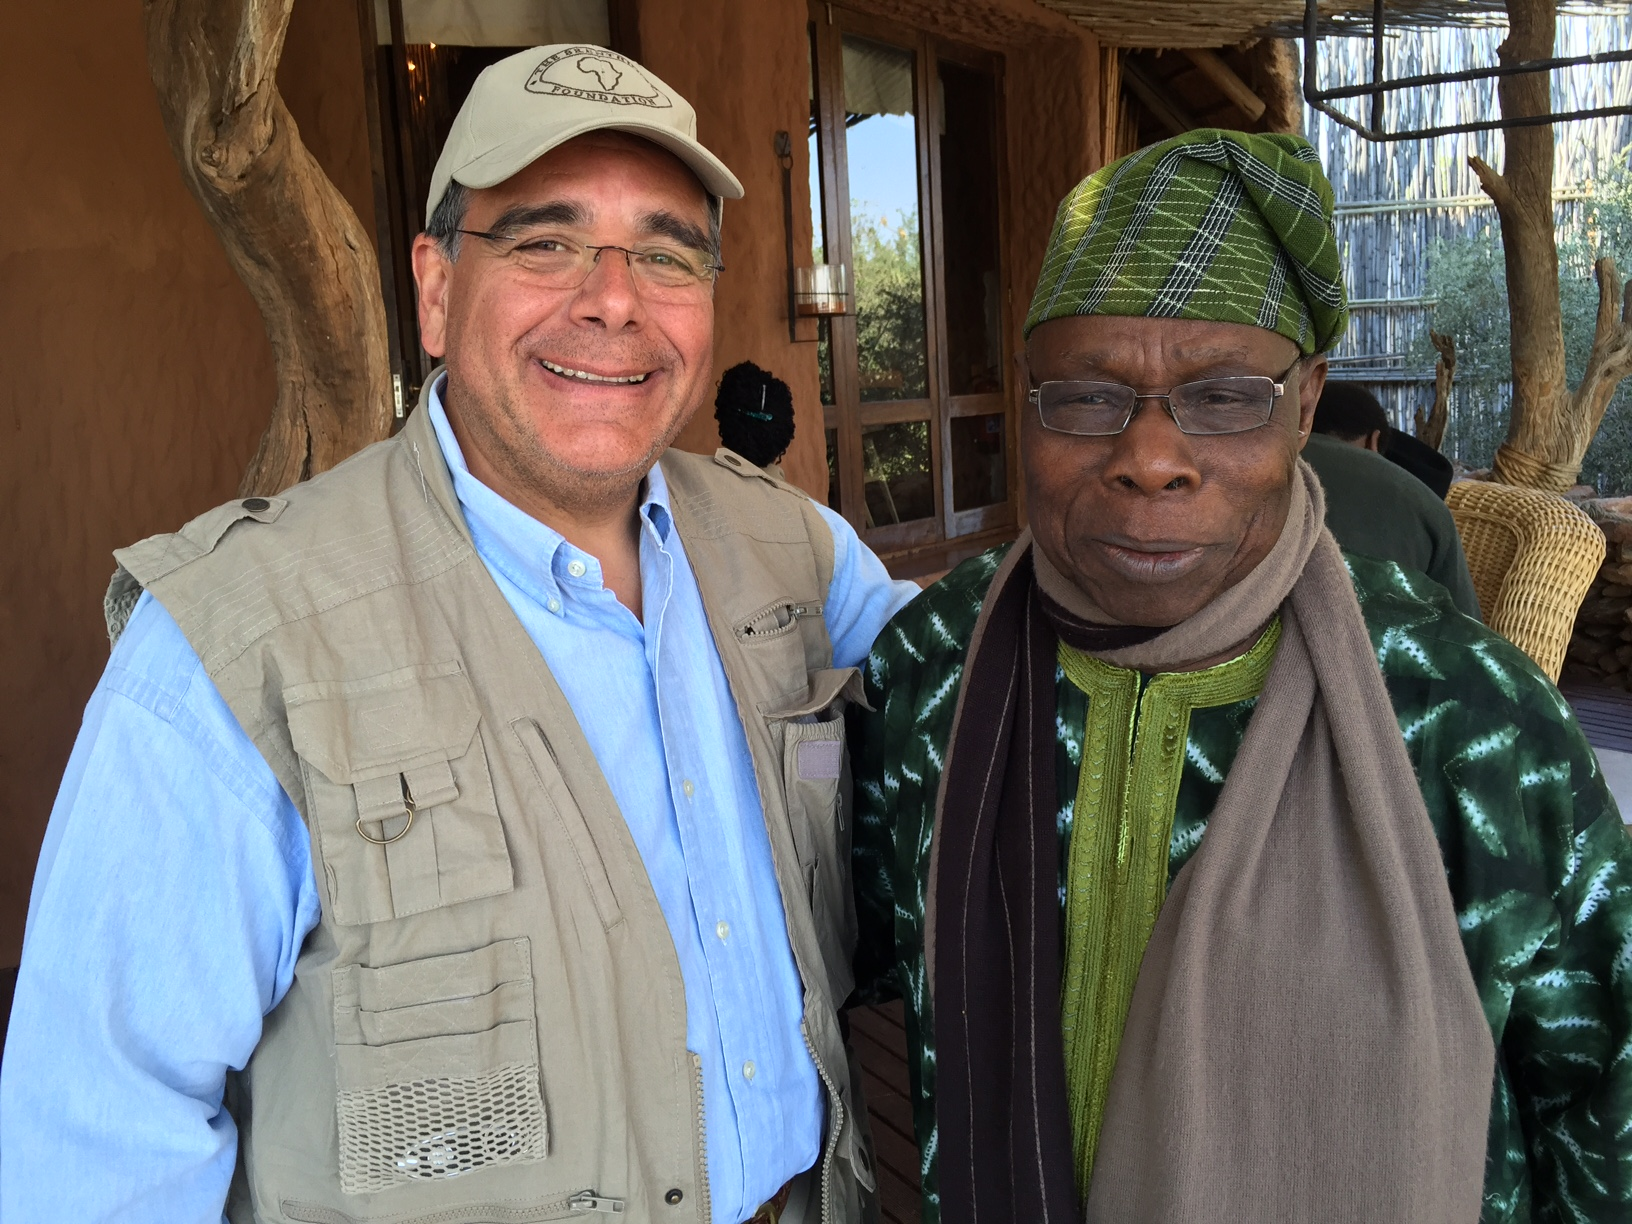 From left, Dr. Daboub, and former President of Nigeria Olusegun Obasanjo